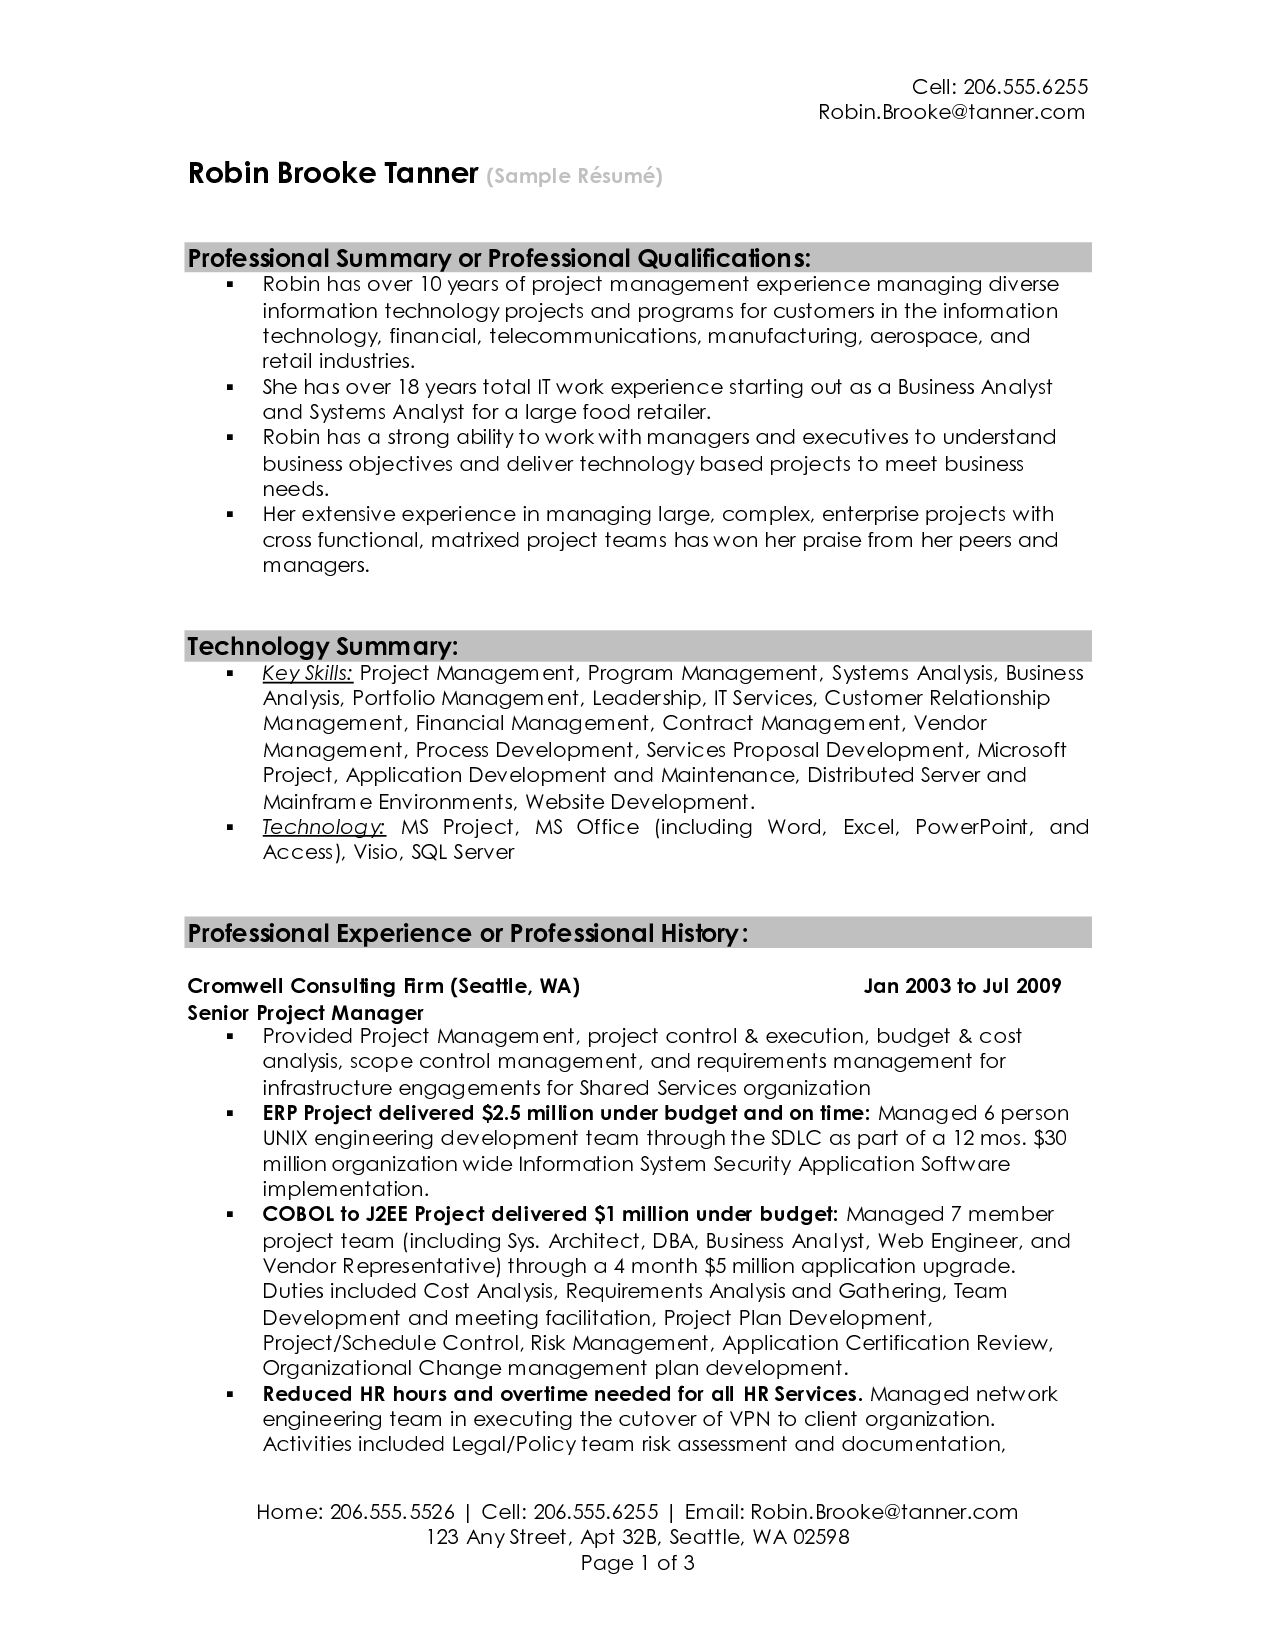 best professional summary resume examples